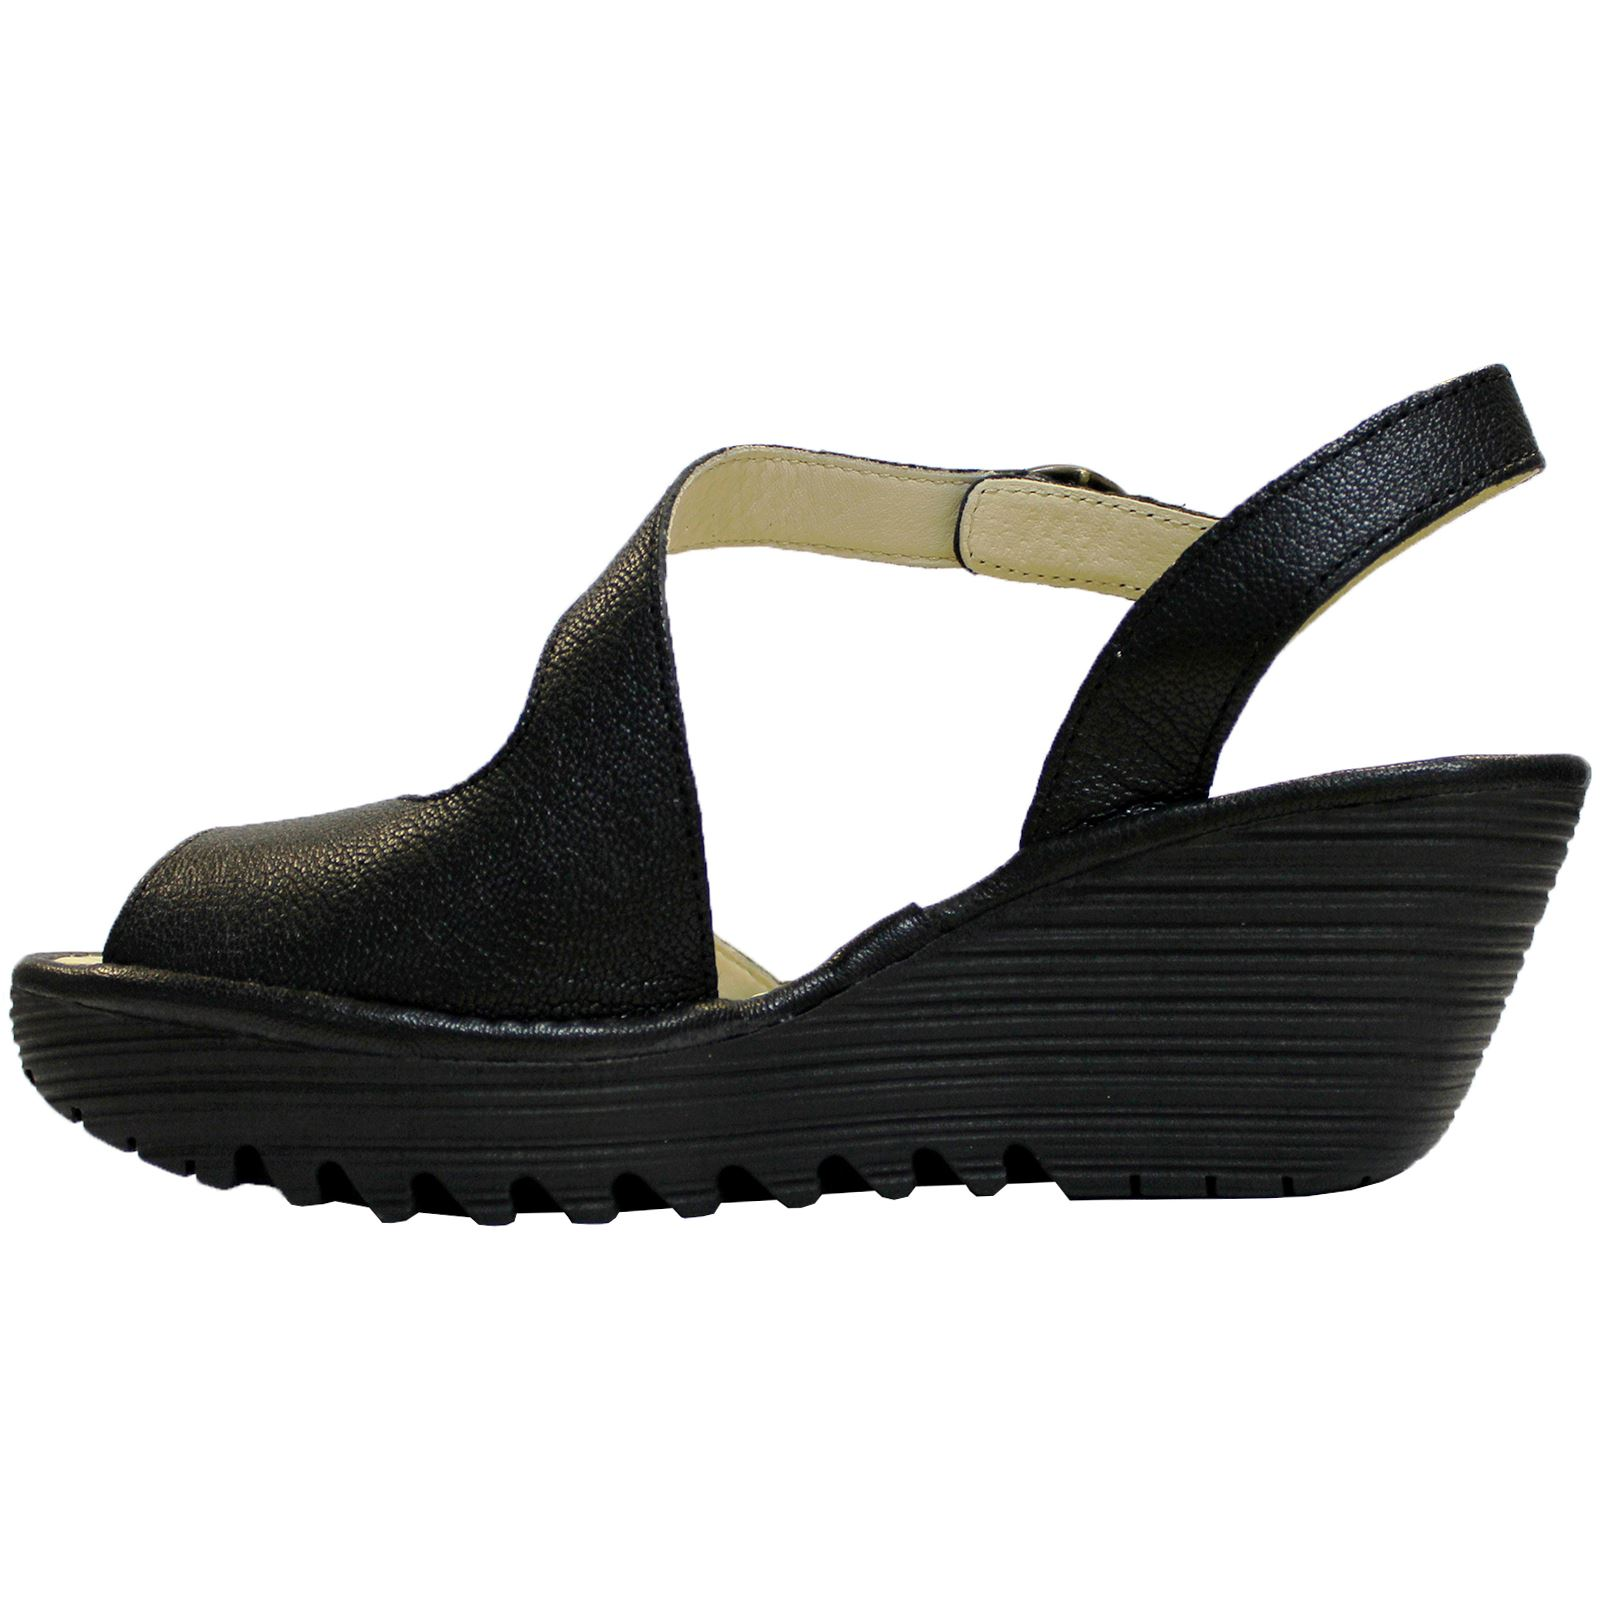 Fly-London-Yamp-836-Black-Womens-Leather-Wedge-Peep-toe-Ankle-Strap-Sandals